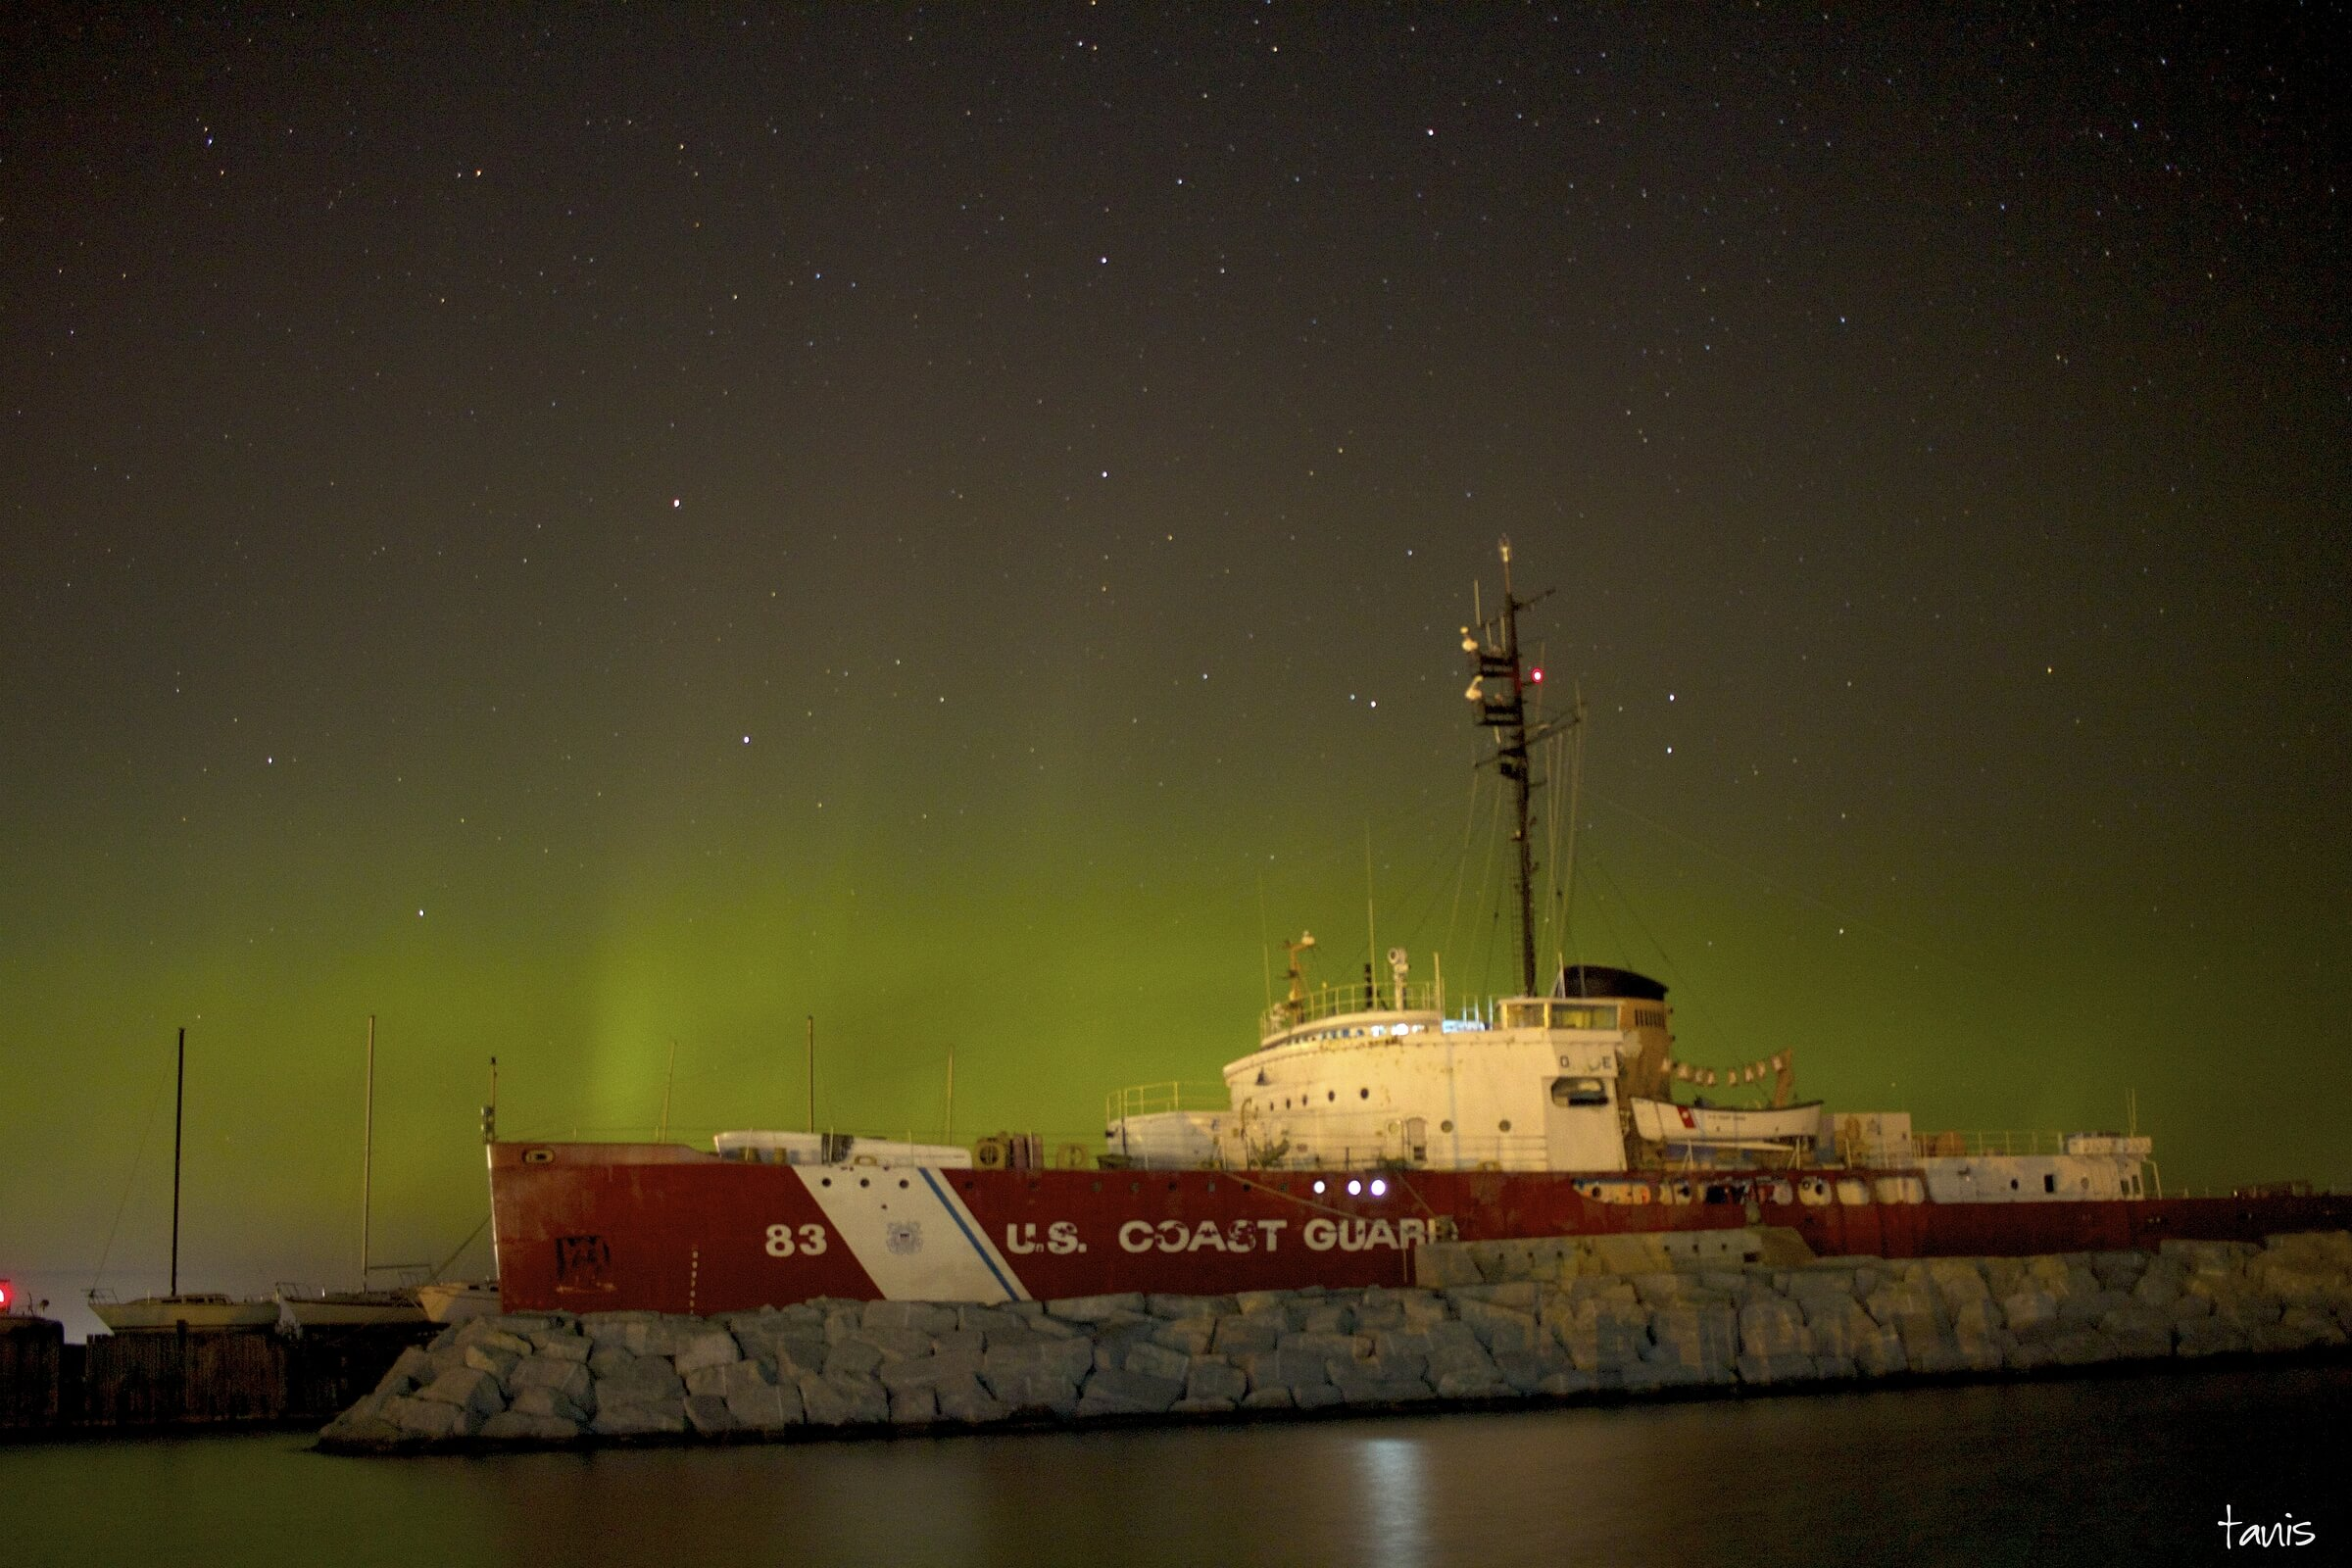 Photo of the Northern Lights over a coast guard ship in Mackinaw City, MI. Copyright 2016, Brian Tannis, lovethegreatlakesstate.com.